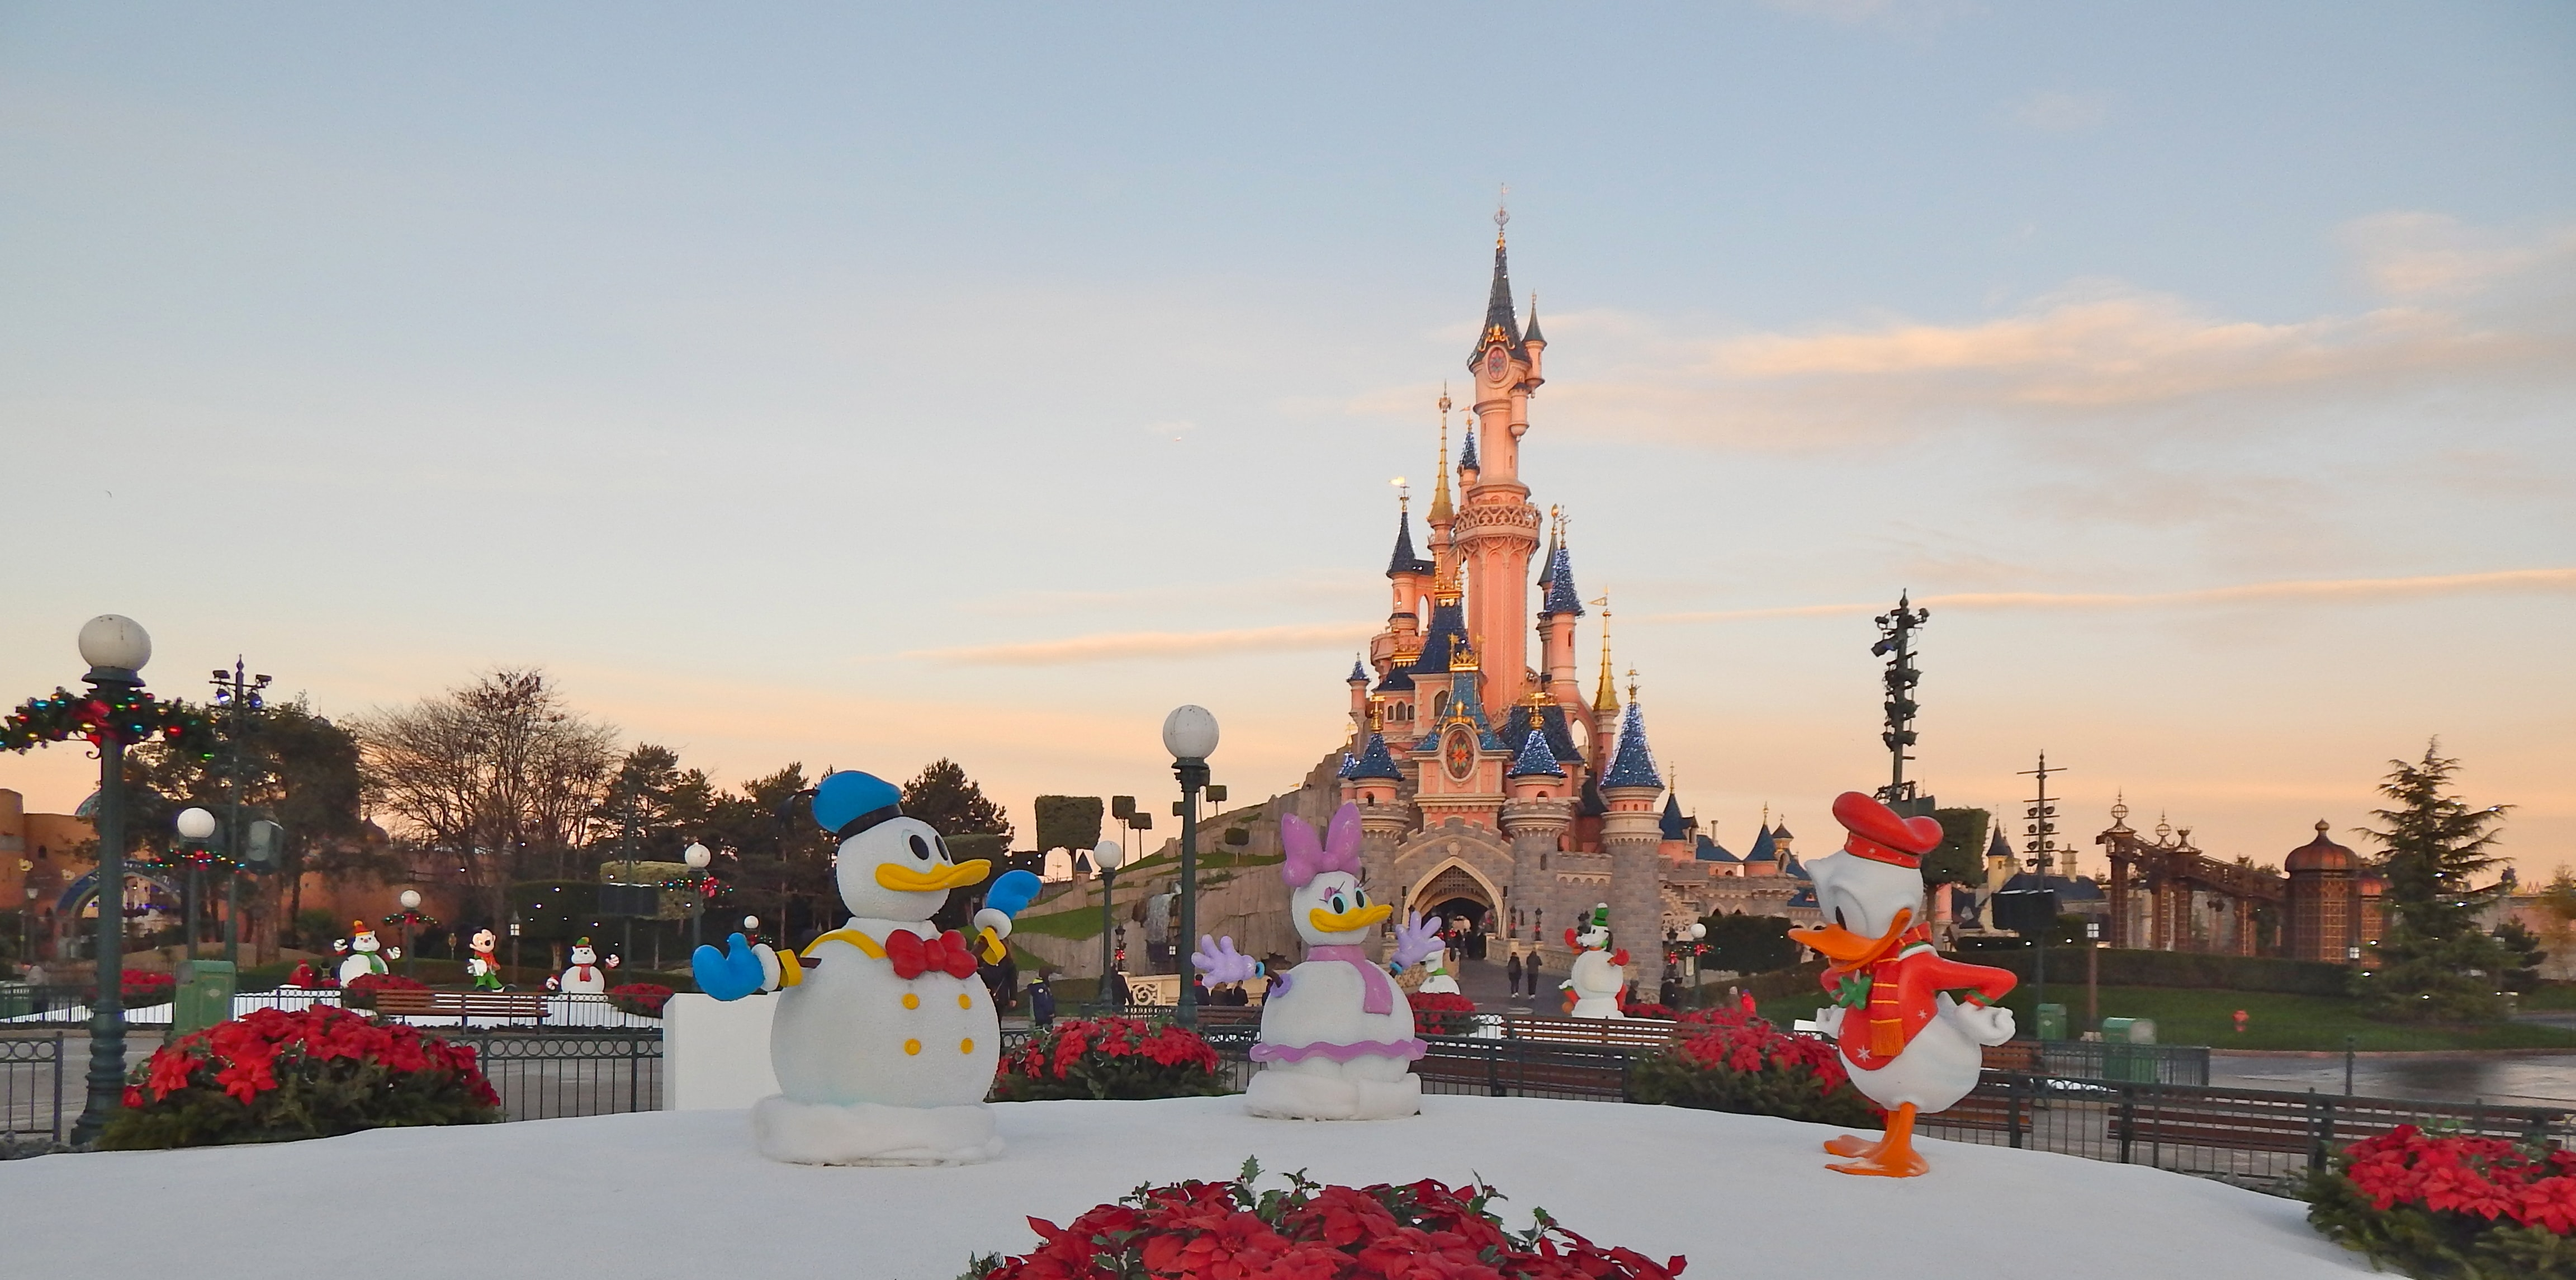 Disneyland Christmas.Why Christmas Is The Best Time To Visit Disneyland Paris